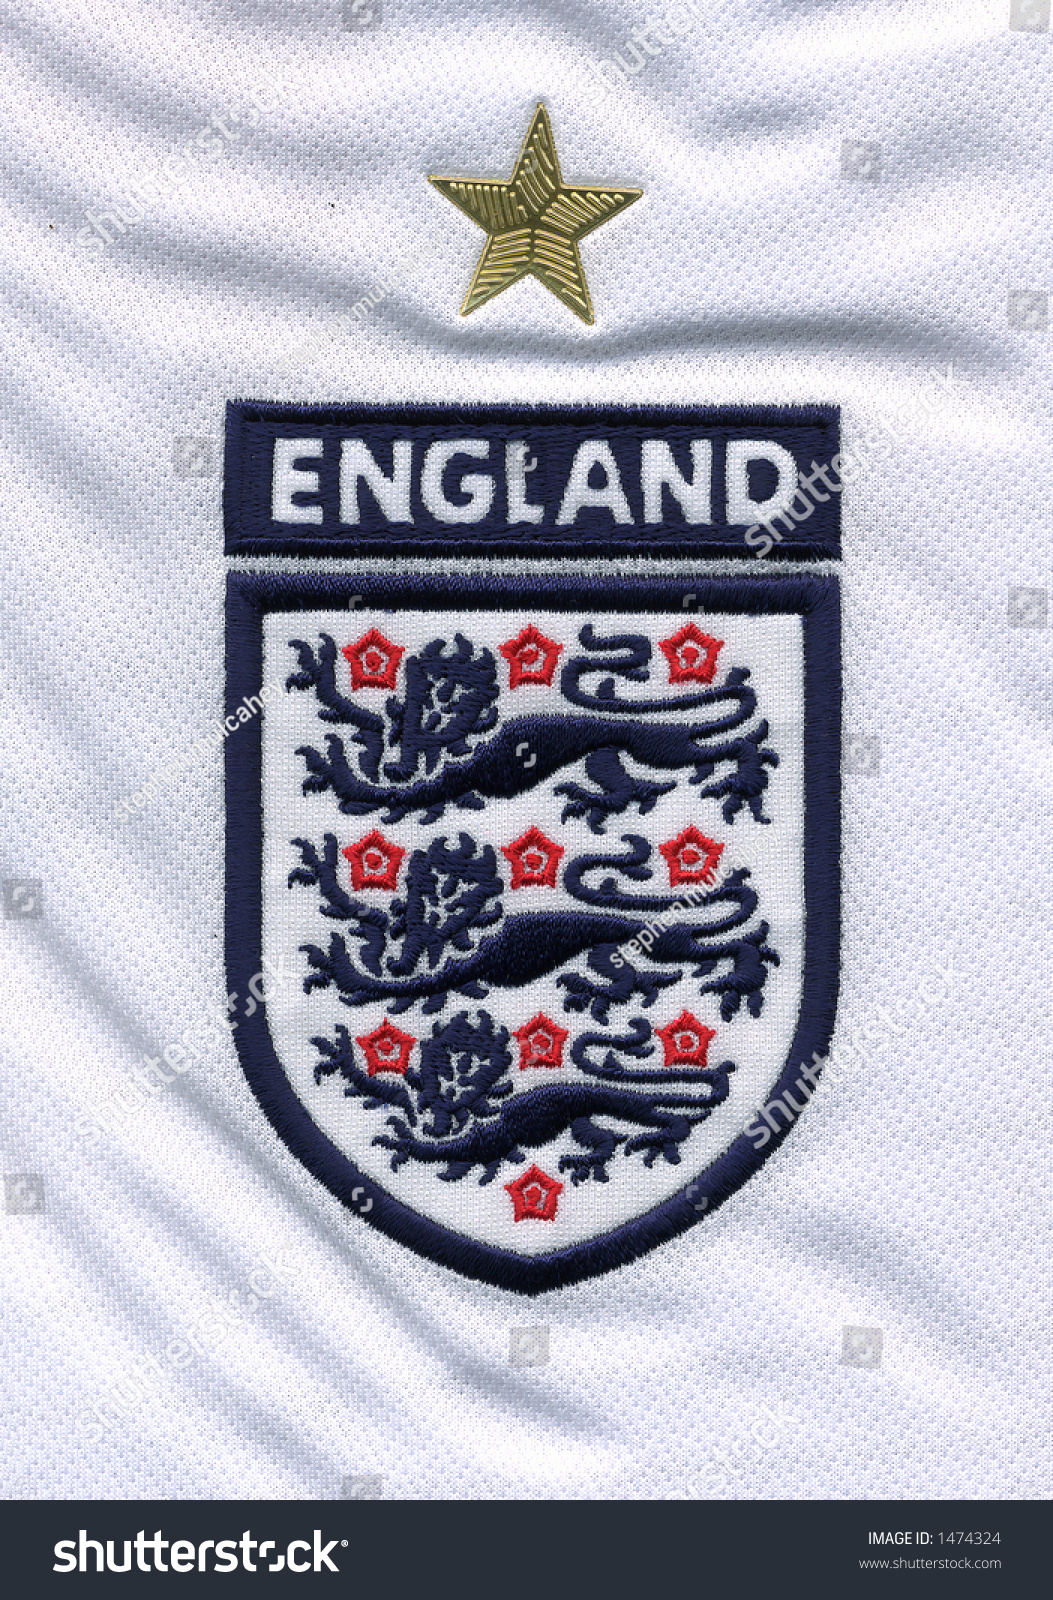 3 lions england logo best lion image and photo hd 2017